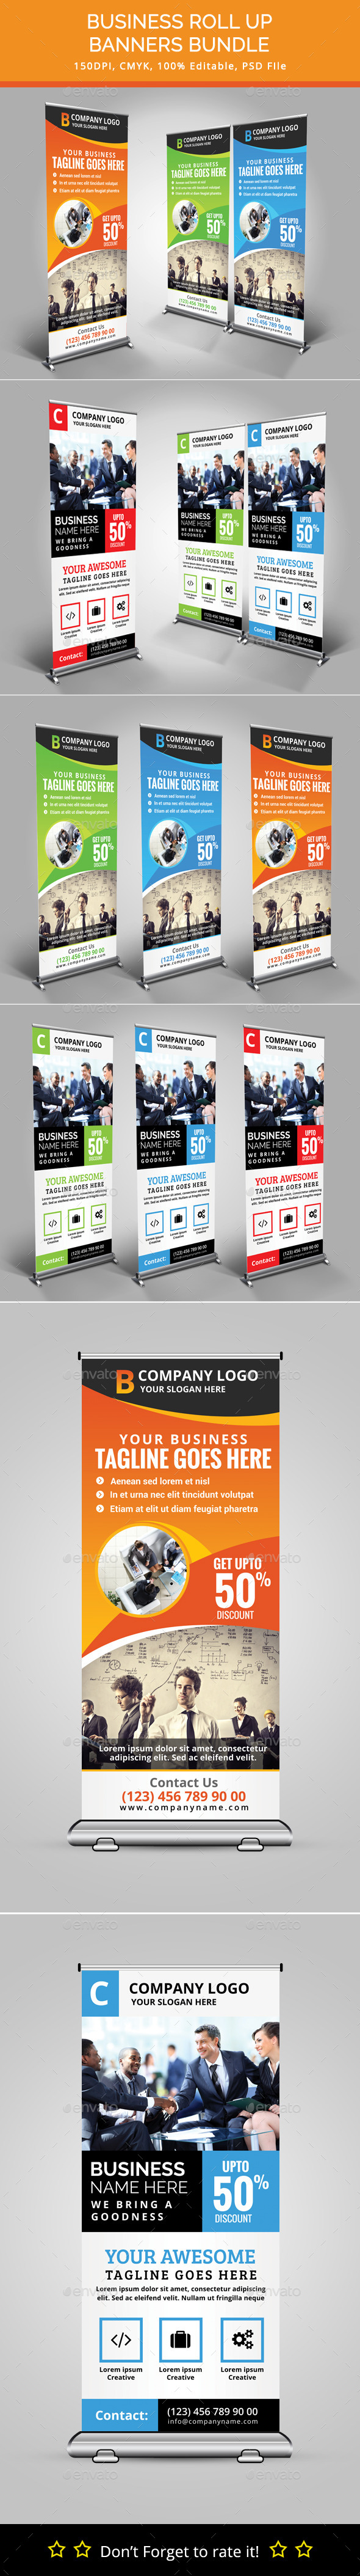 Bundle of 2 Business Rollup Banners - Signage Print Templates